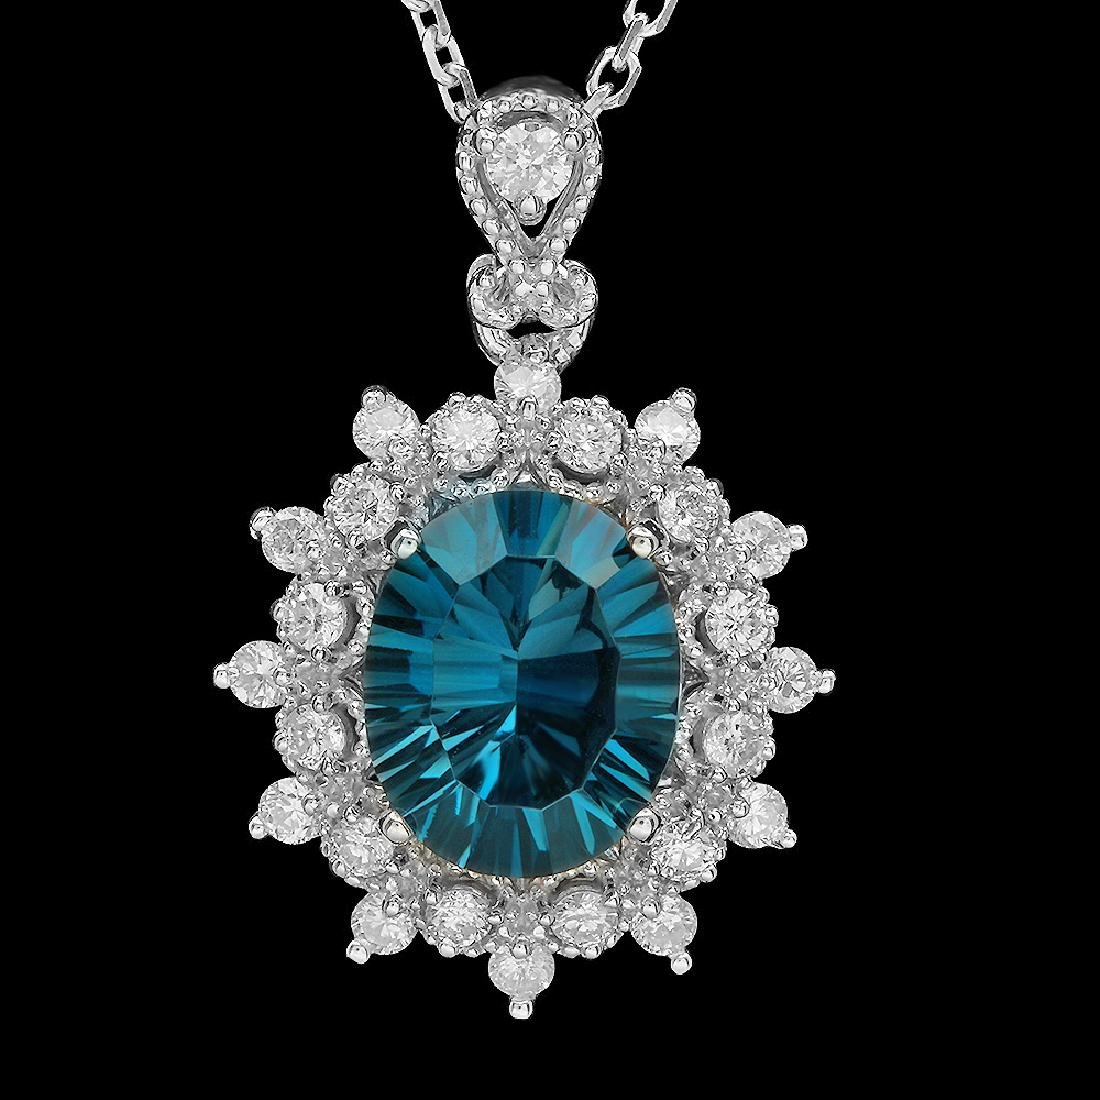 14K Gold 2.89ct Topaz 0.55ct Diamond Pendant